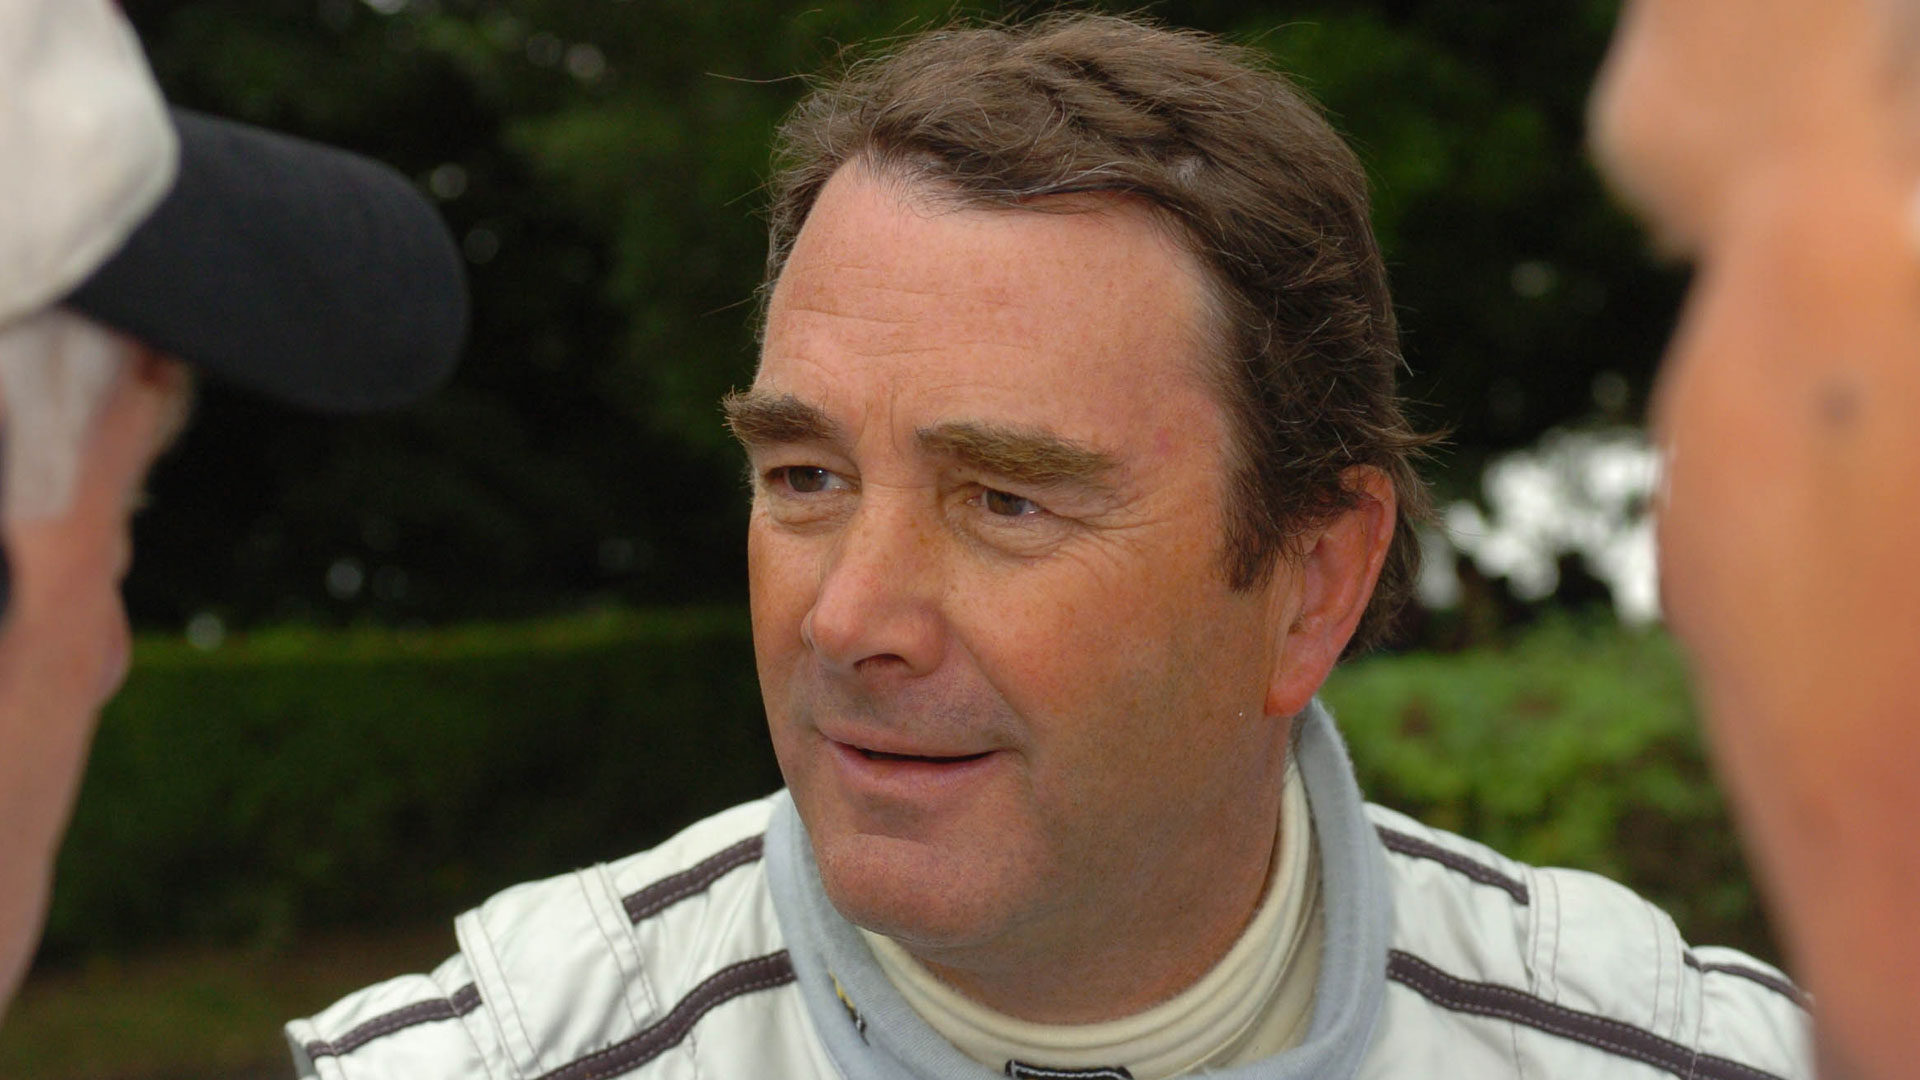 Check your car every week, says Nigel Mansell